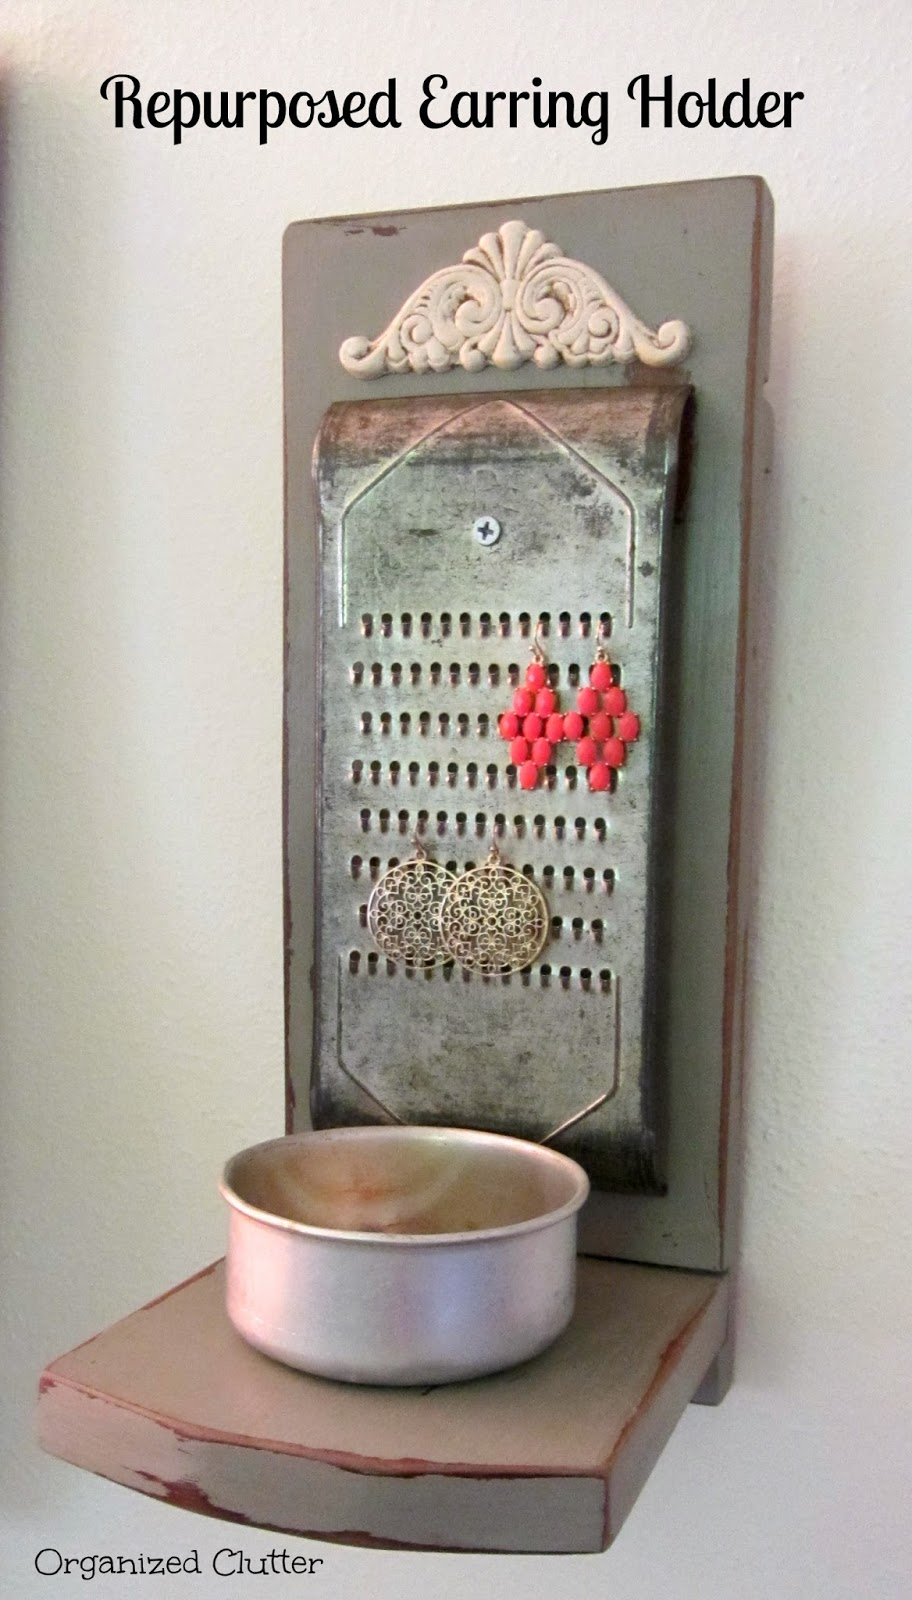 Repurposed Grater Earring Holder www.organizedclutterqueen.blogspot.com